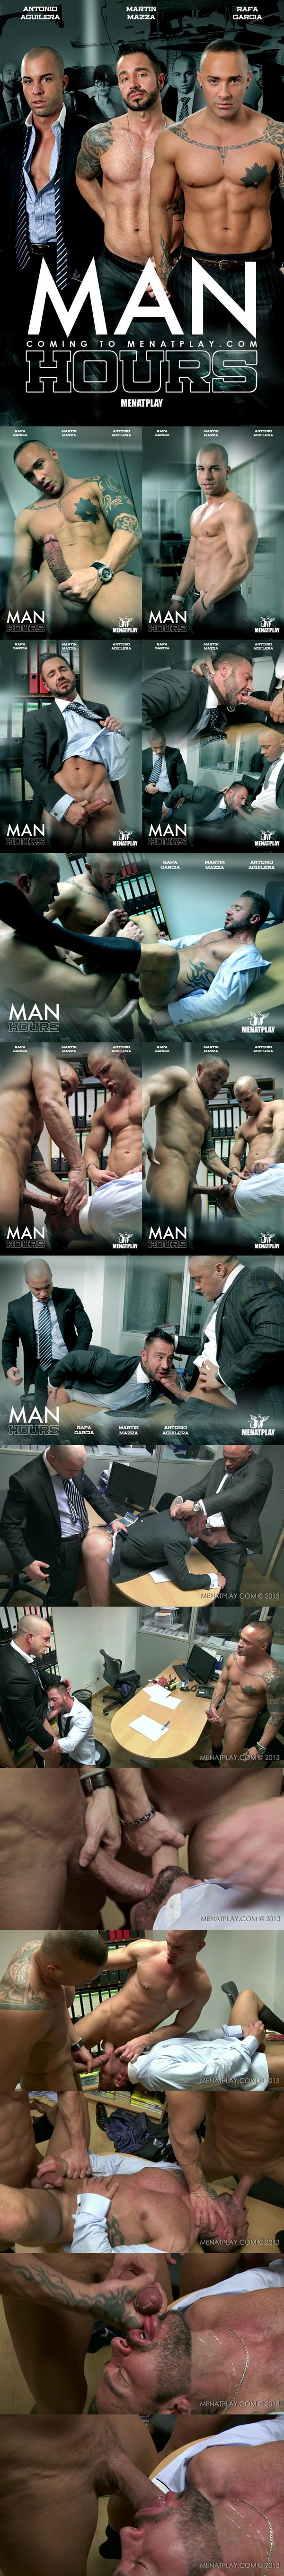 Handsome straight porn stars Rafa Garcia and Antonio Aguilera fucks bearded Martin Mazza in Man Hours at Menatplay 01